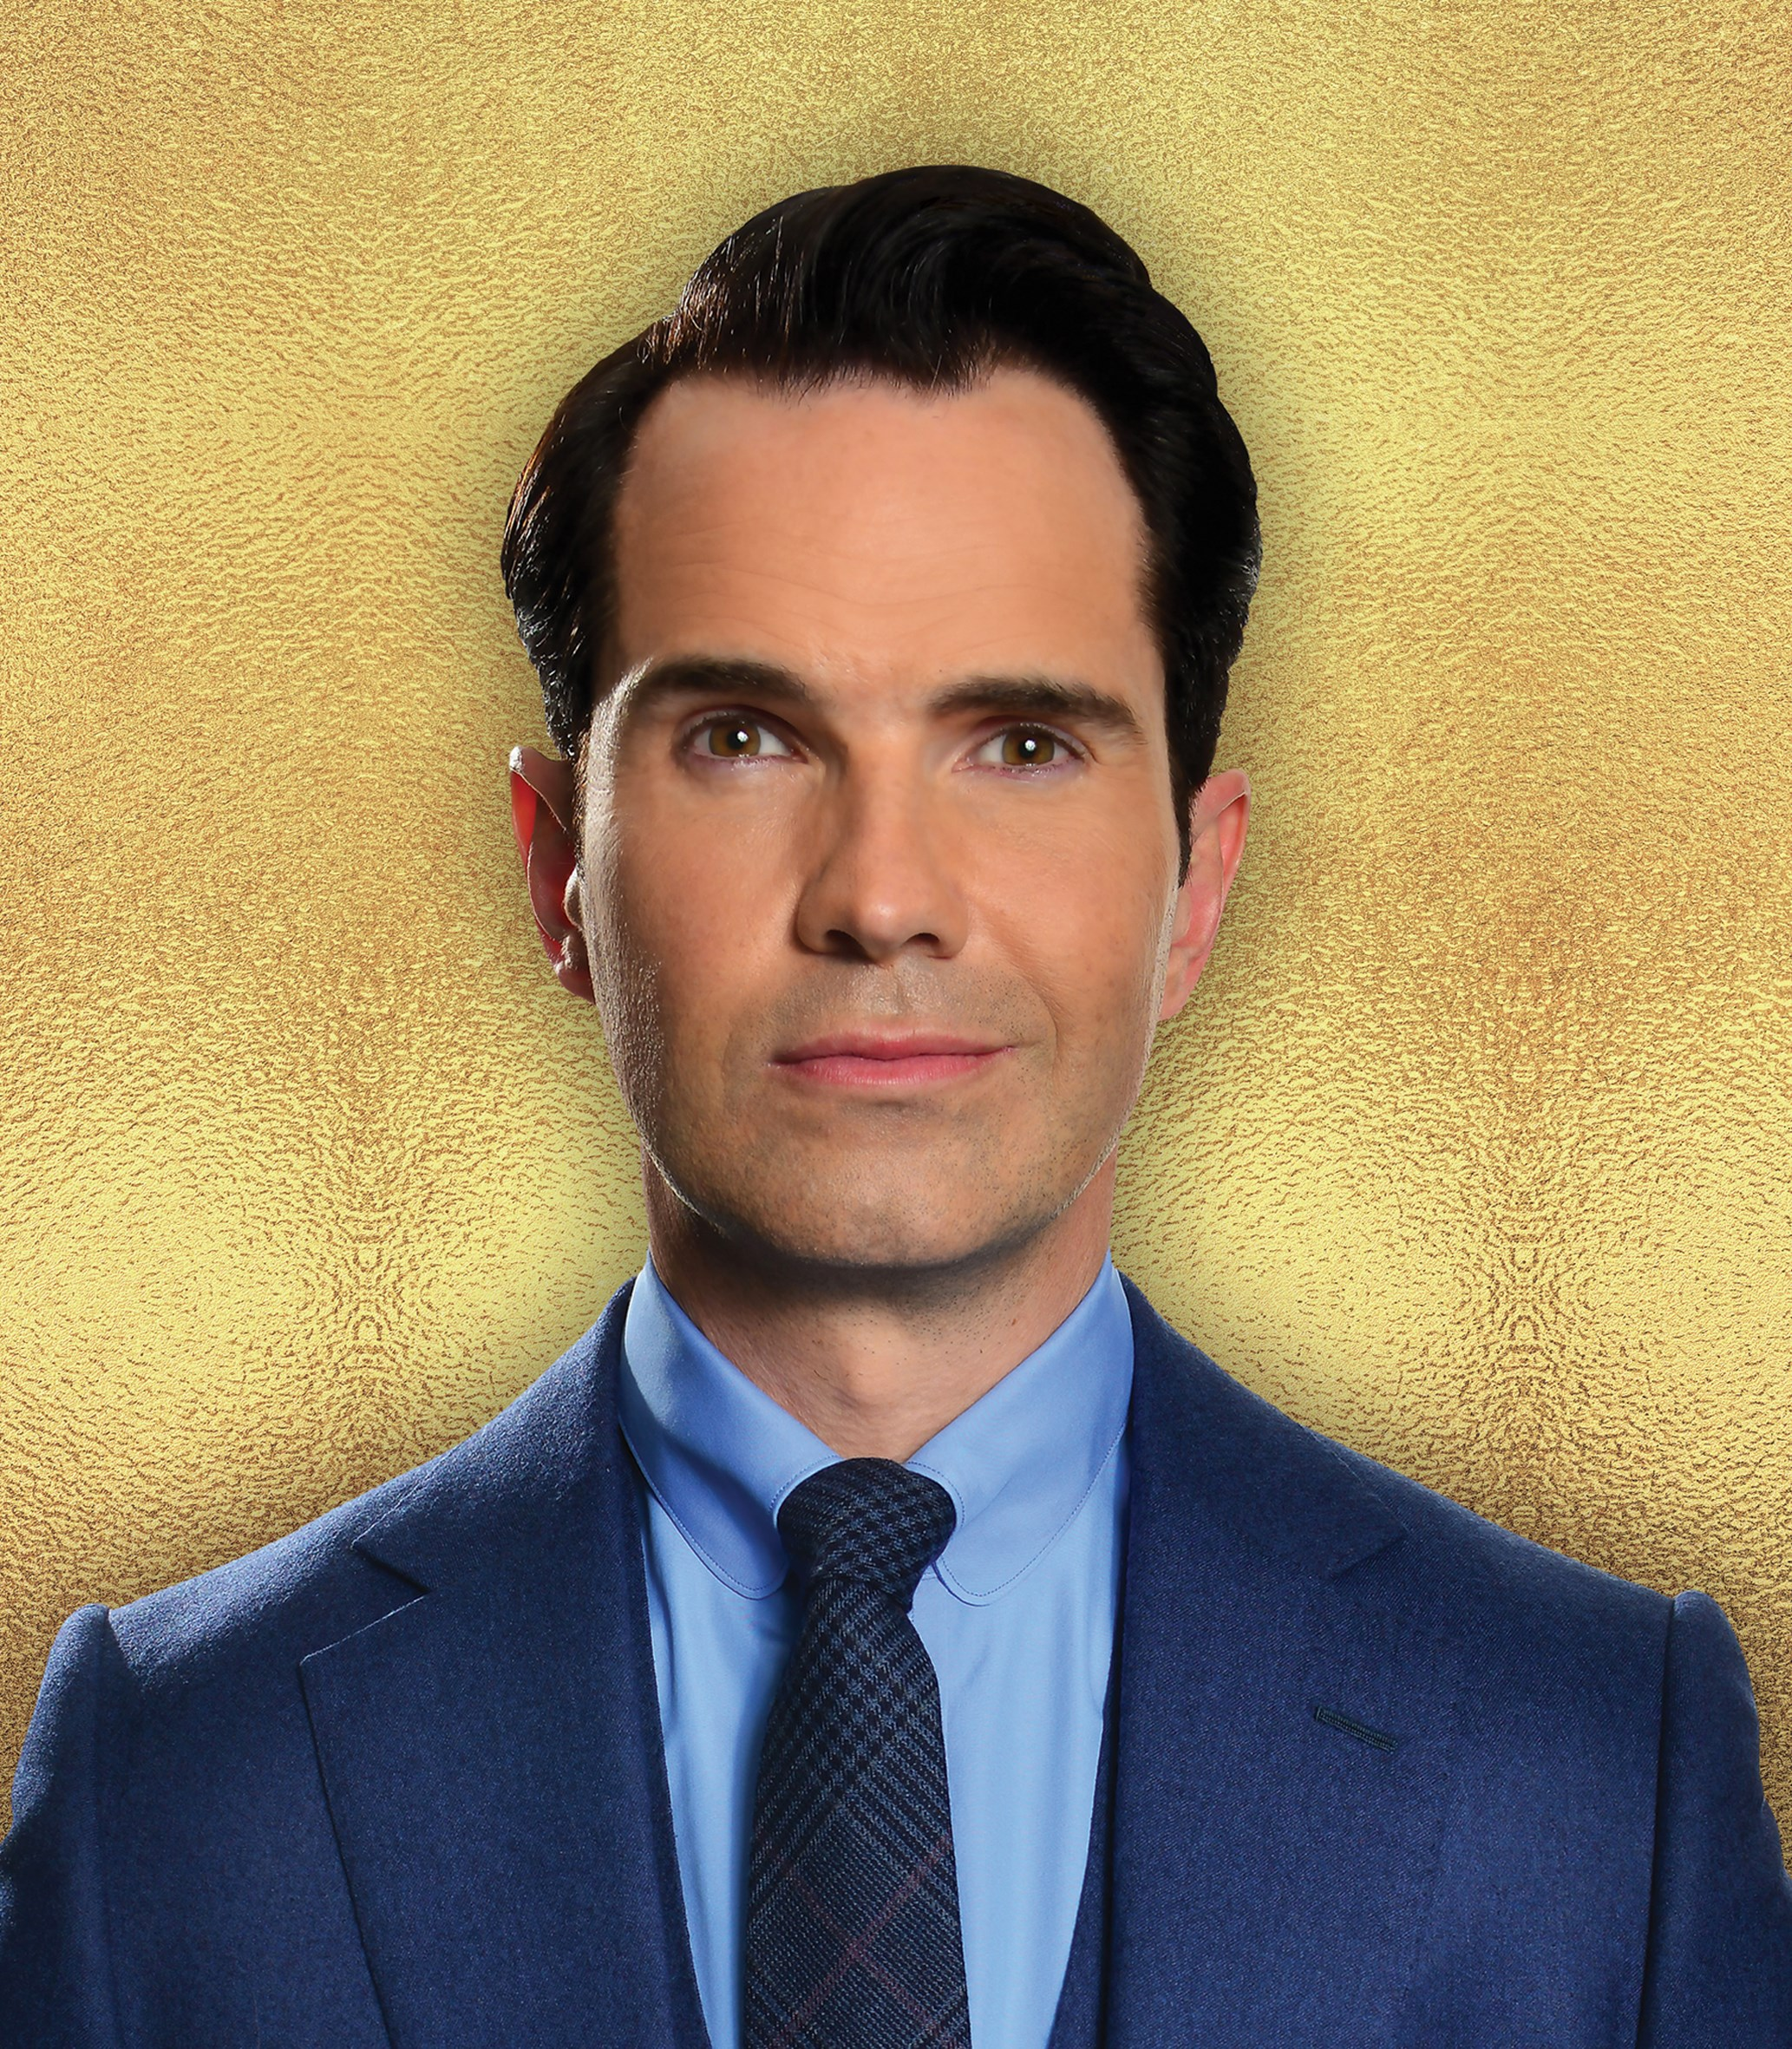 Jimmy Carr: The Best of, Ultimate, Gold, Greatest Hits Tour NEW DATE